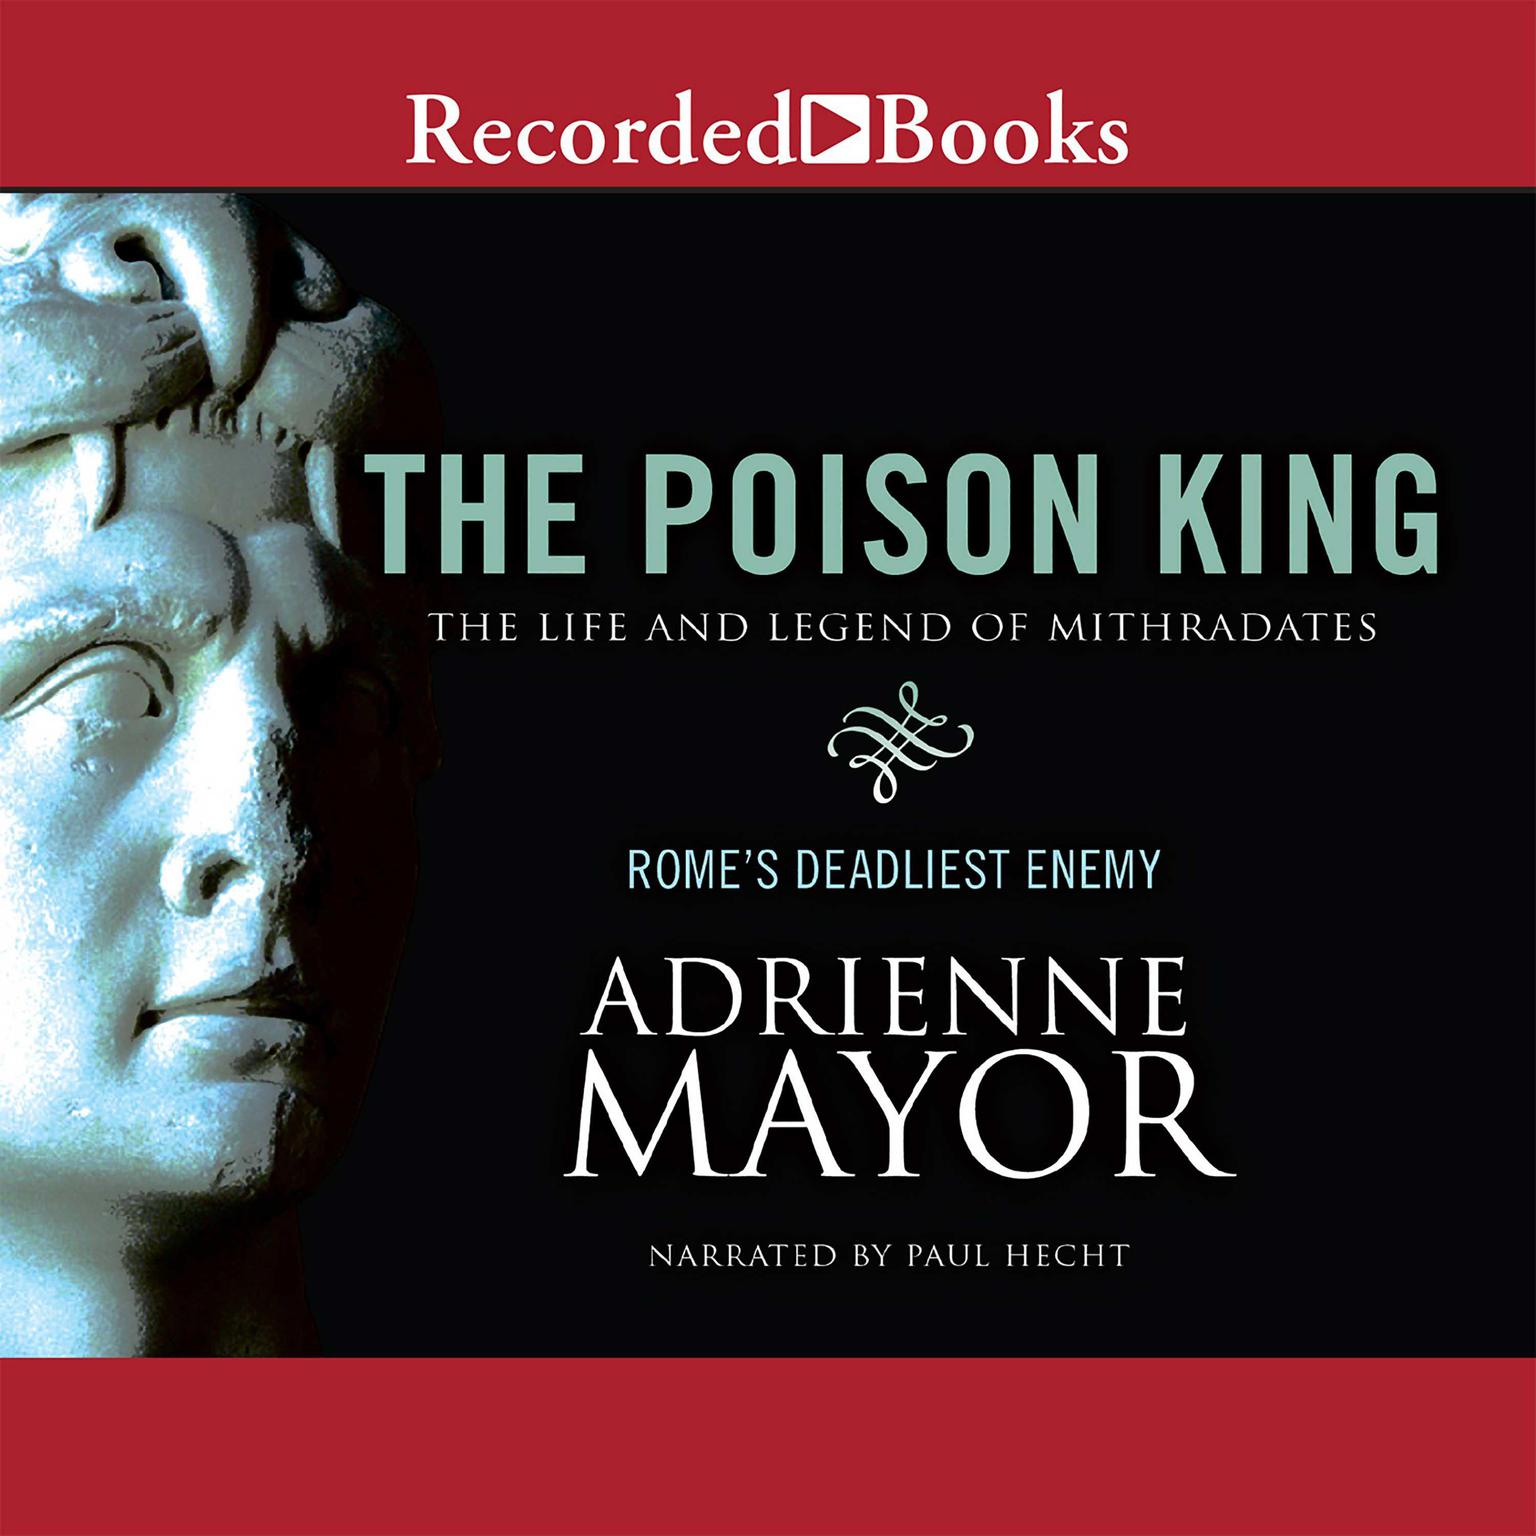 Printable The Poison King: The Life and Legend of Mithradates, Rome's Deadliest Enemy Audiobook Cover Art